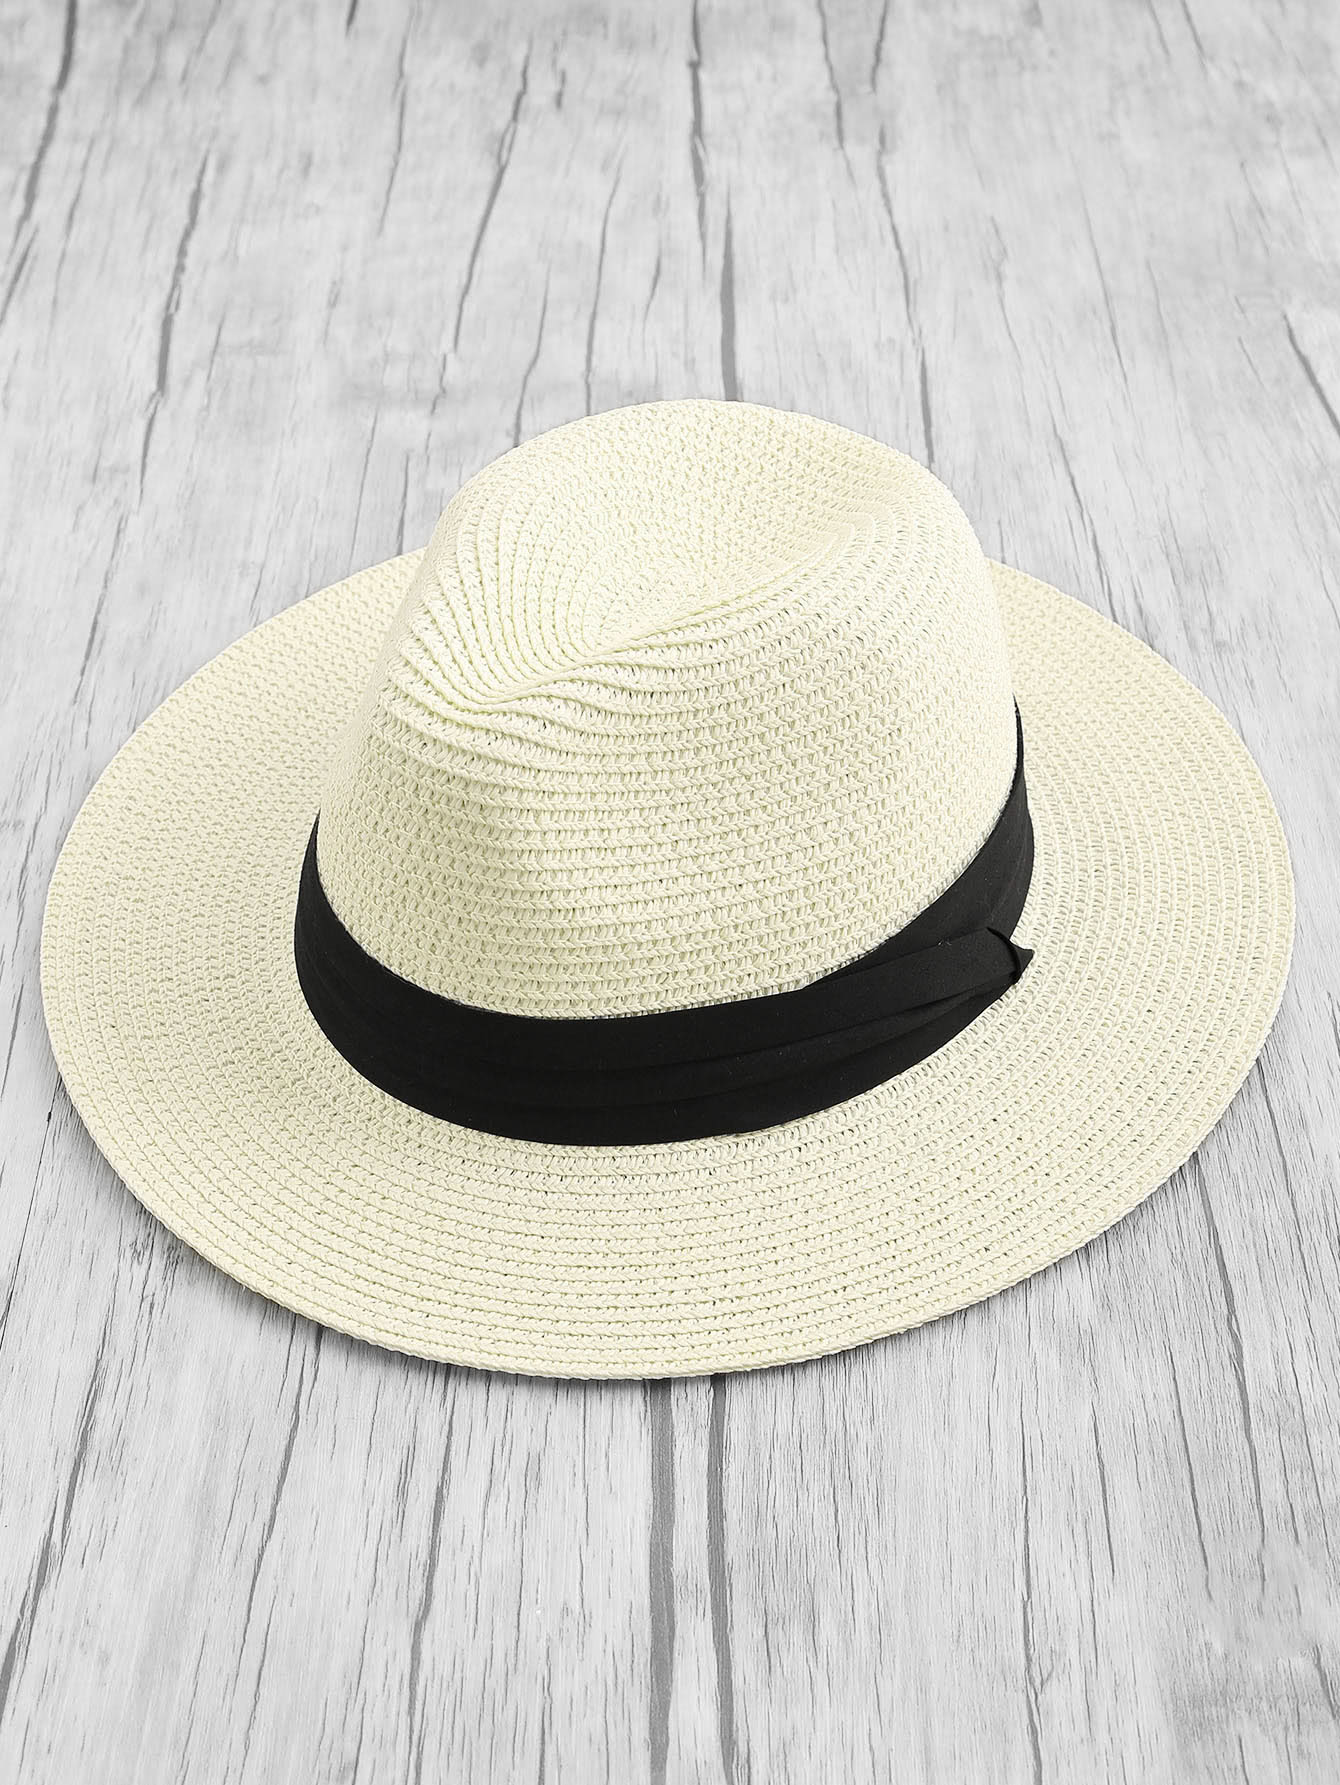 Contrast Band Straw Fedora Hat knot band straw hat